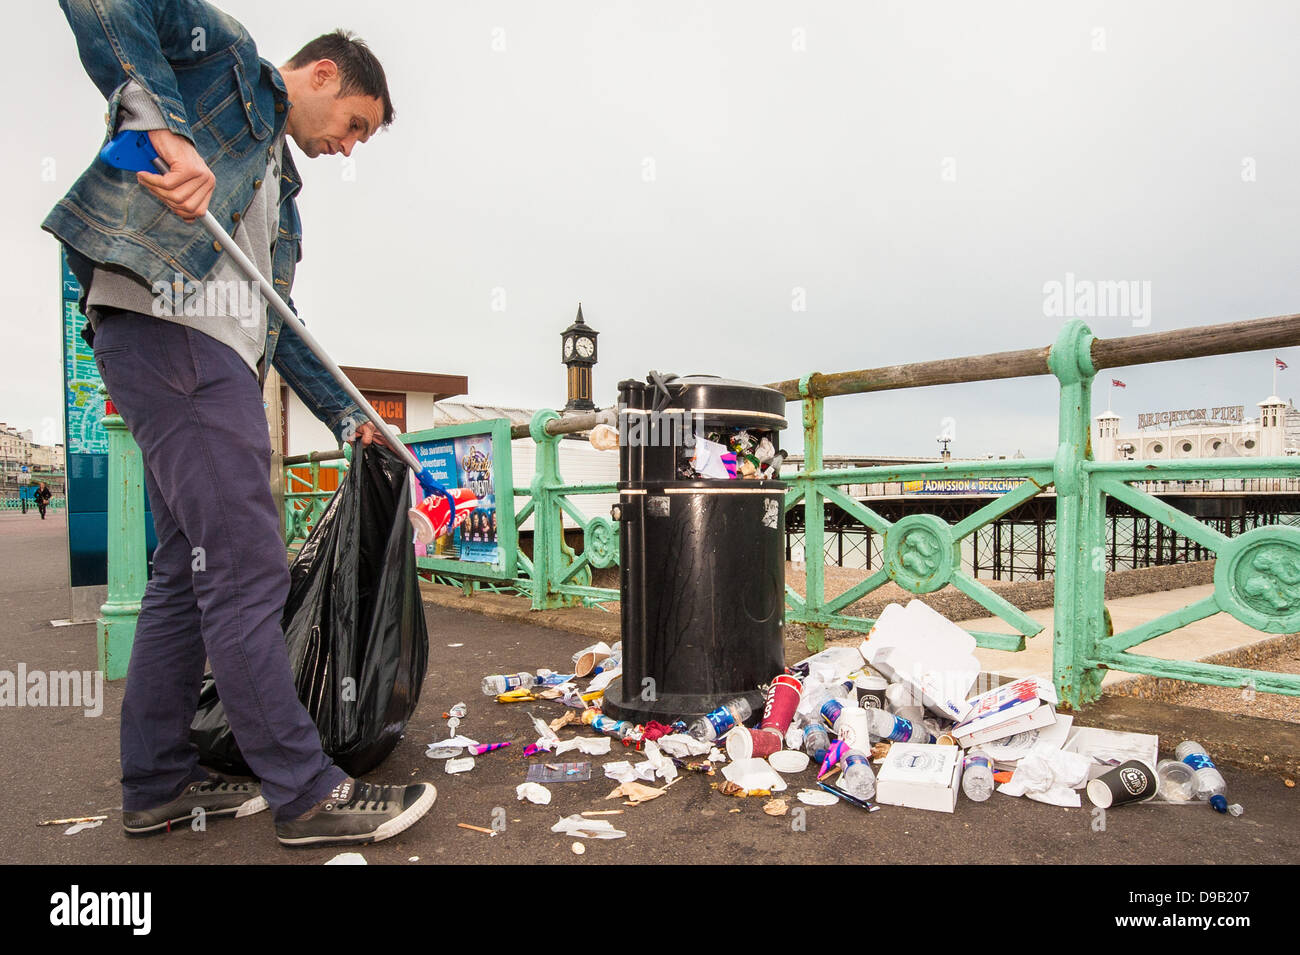 Brighton, UK. 17th June, 2013. Monday morning clean up - Brighton Pier workers clean up the mess as the city's cleaners Stock Photo